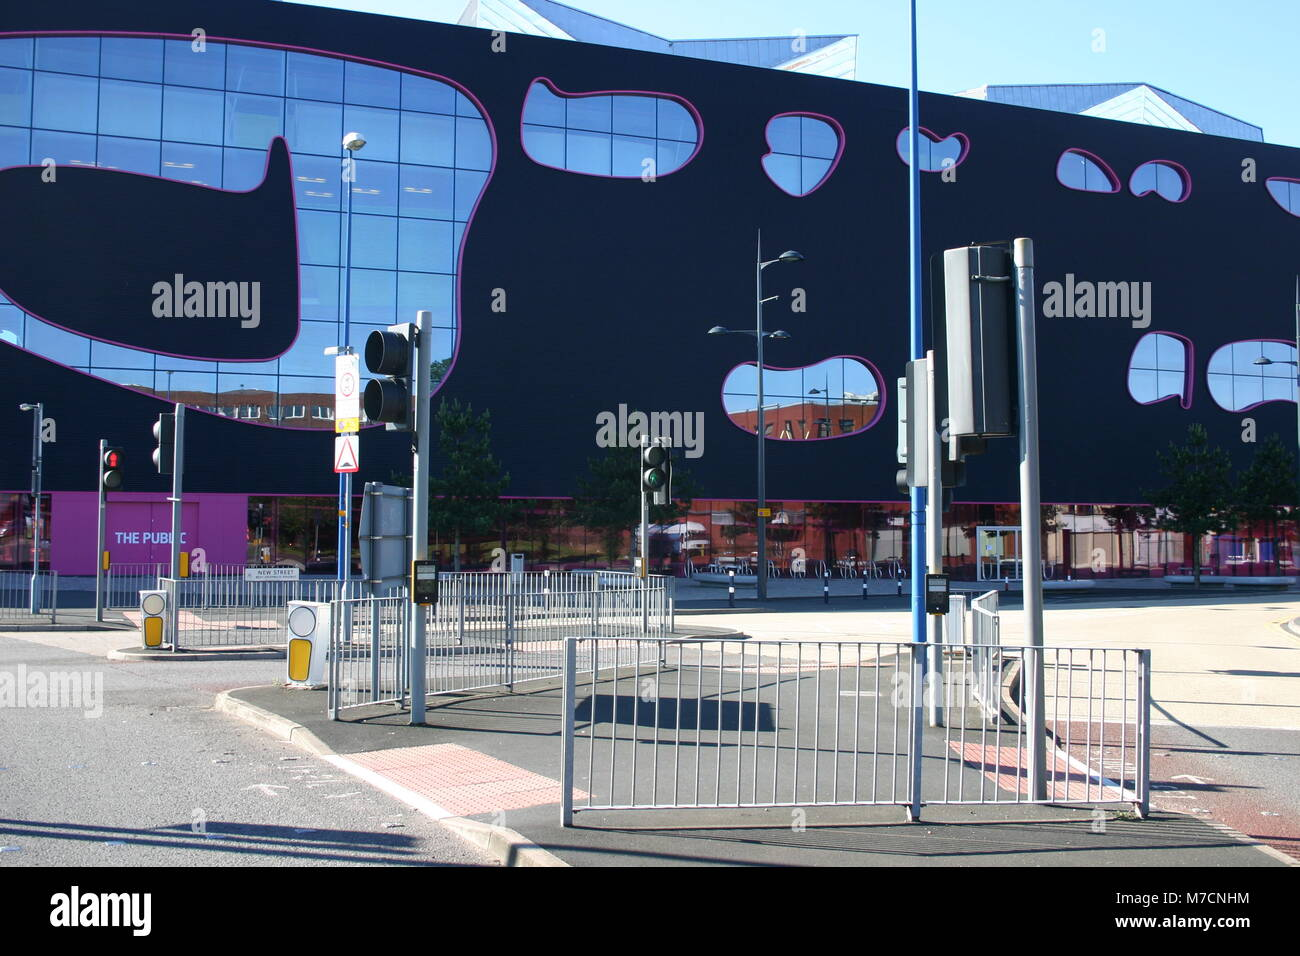 Pedestrian crossing in front of The Public designed by Will Alsop and now part of Sandwell College, West Bromwich - Stock Image